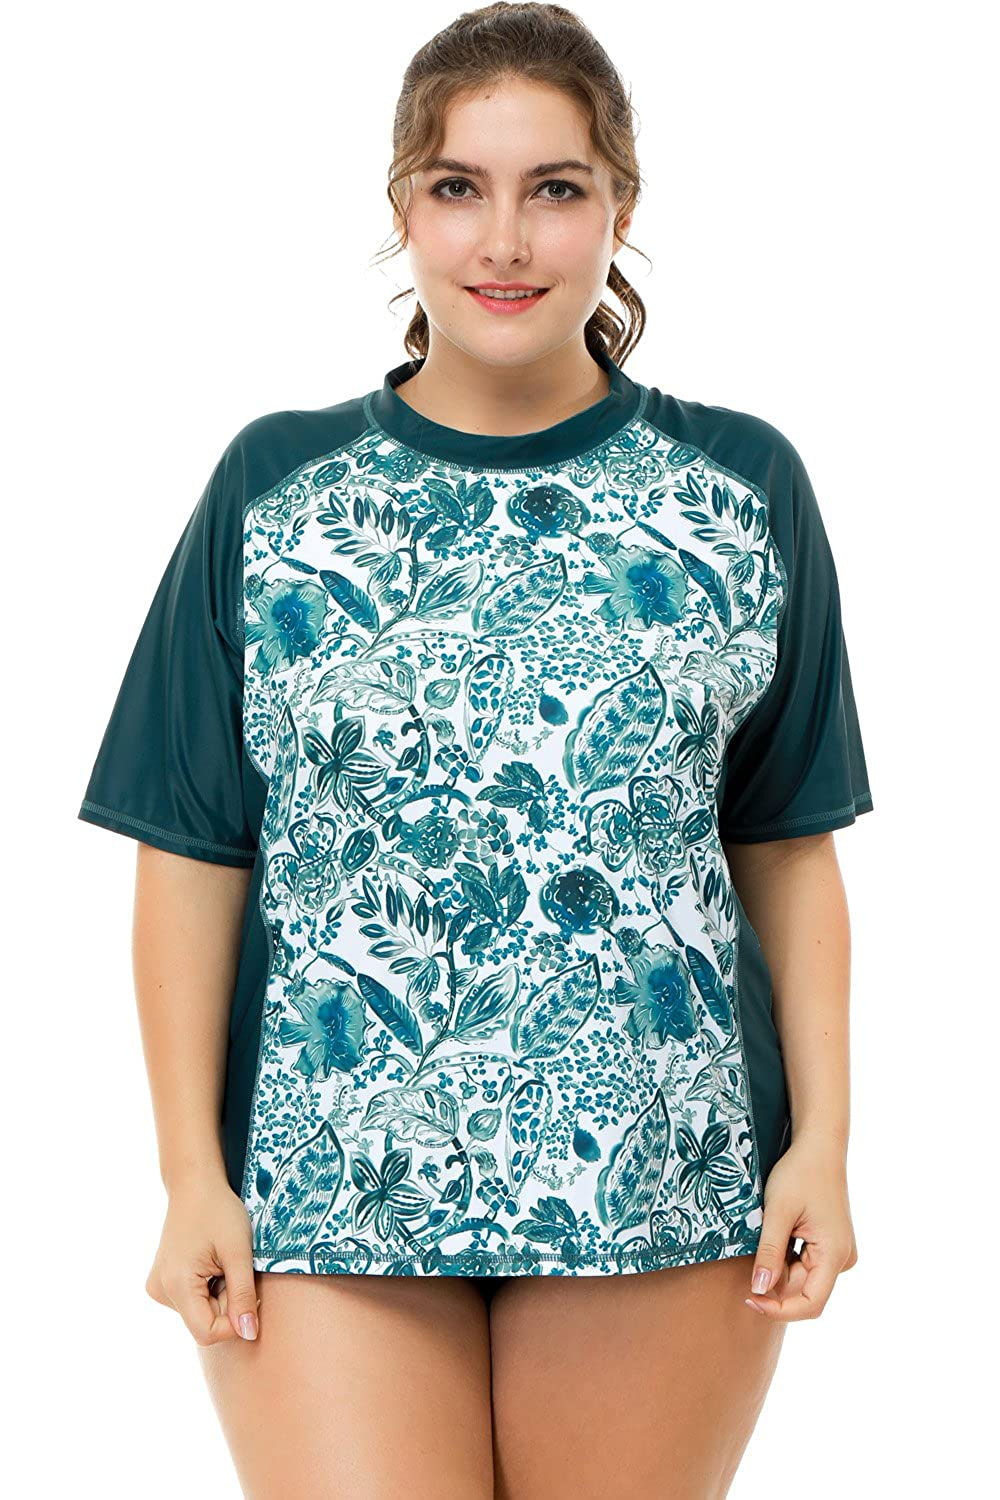 9602694390a20 Sociala Women s Plus Size Rash Guard Short Sleeve Swim Shirt ...